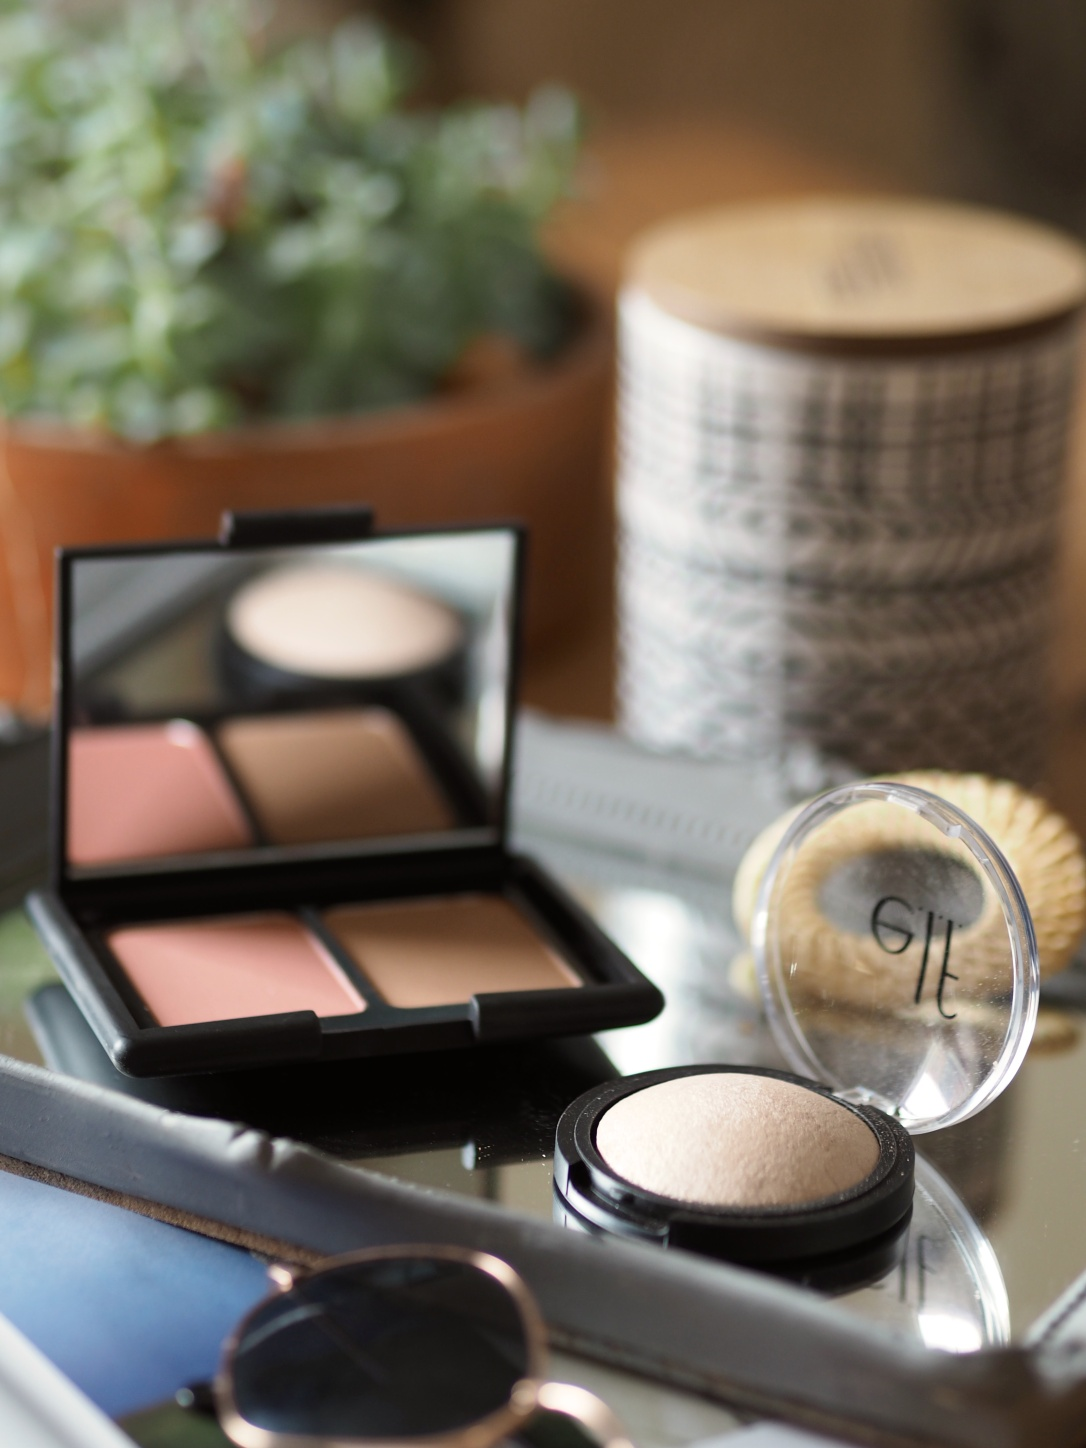 ELF bronzer, blush and highlight